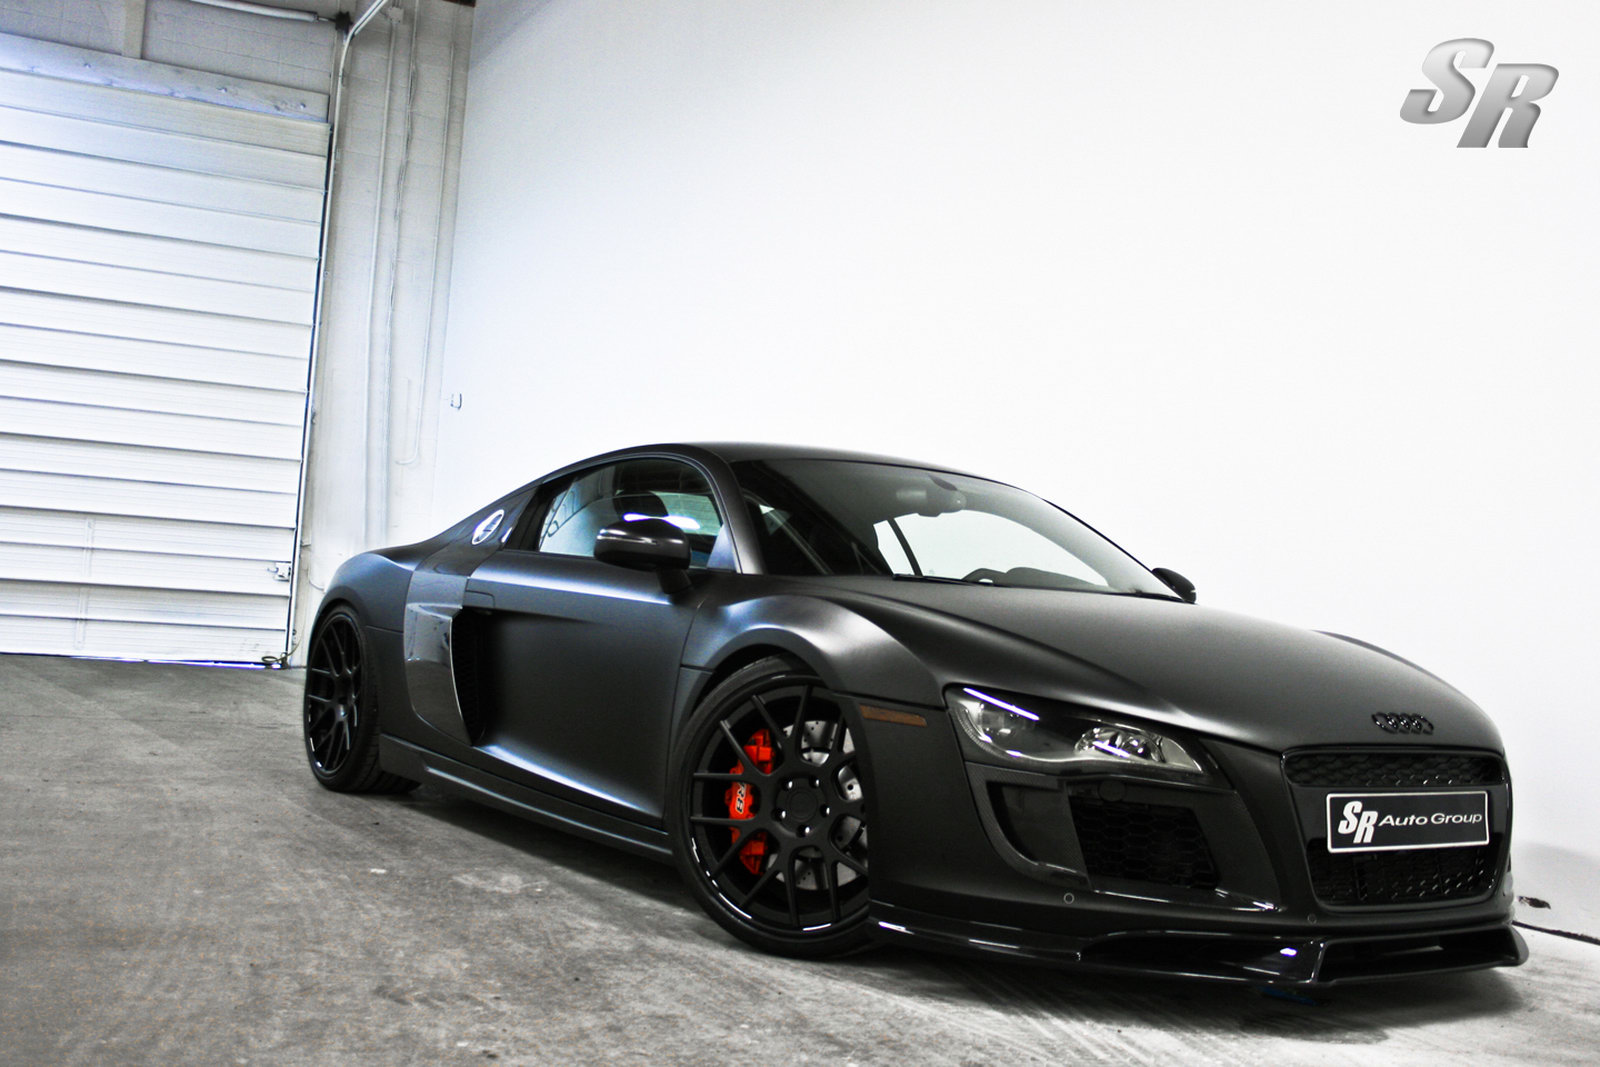 Toyota Supra Roof Rack Stealthily Tuned Audi R8 Valkyrie by SR Auto